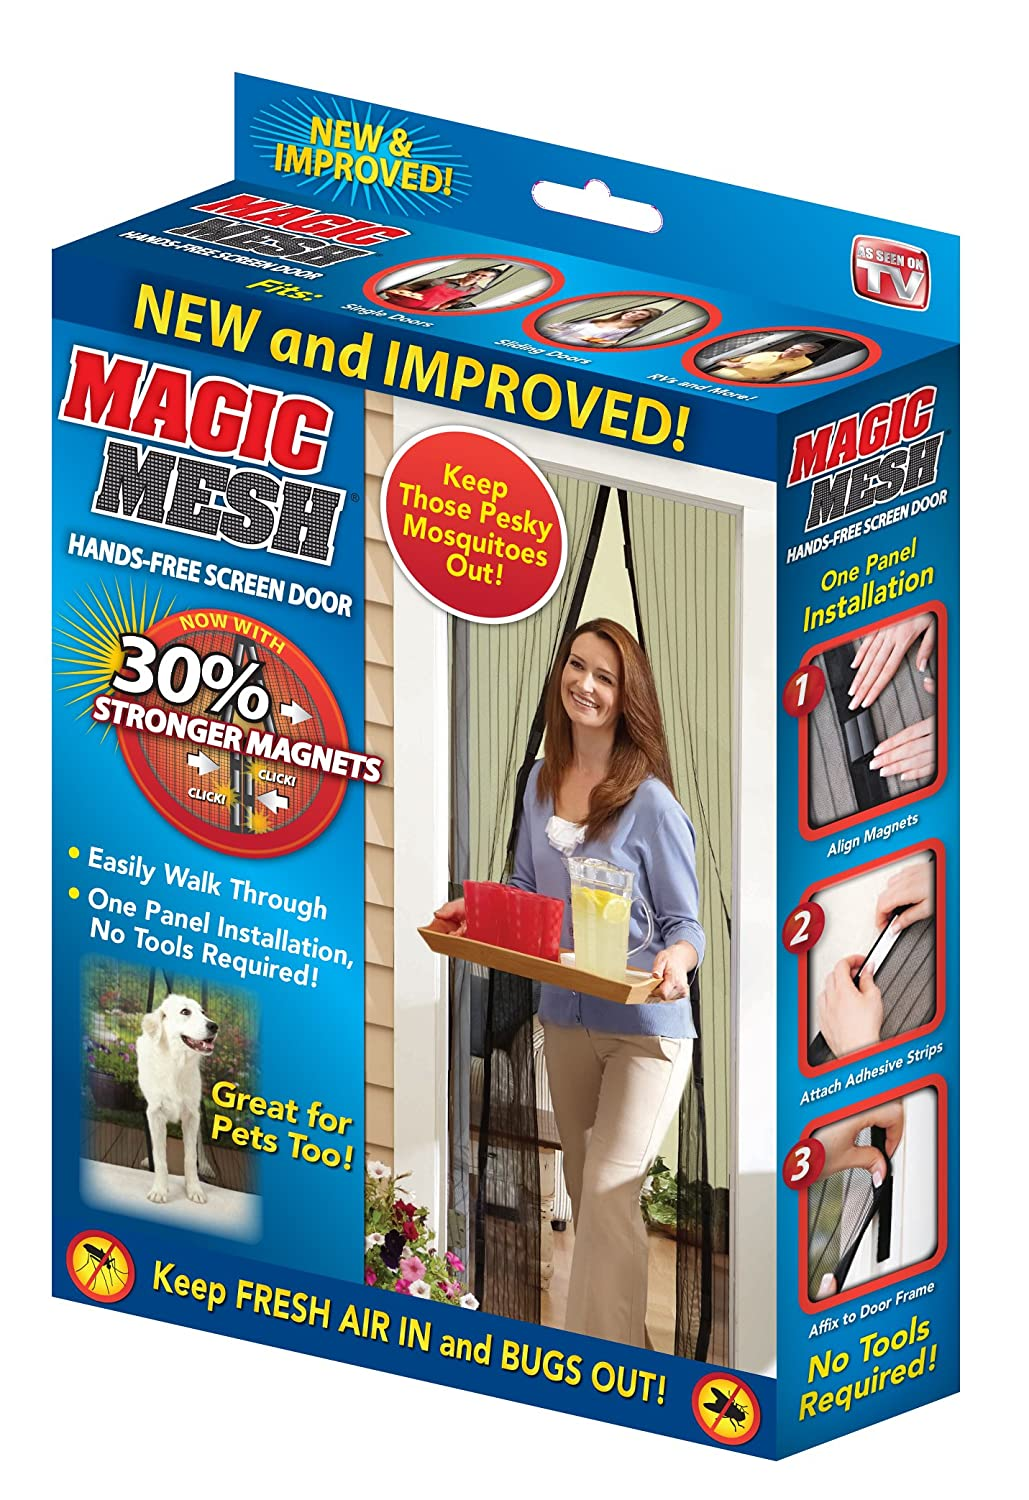 Magic Mesh The New & Improved 30% Stronger Hands Free Magnet Screen Door To Help Block Mosquitoes & Bugs (Official As Seen ON TV)